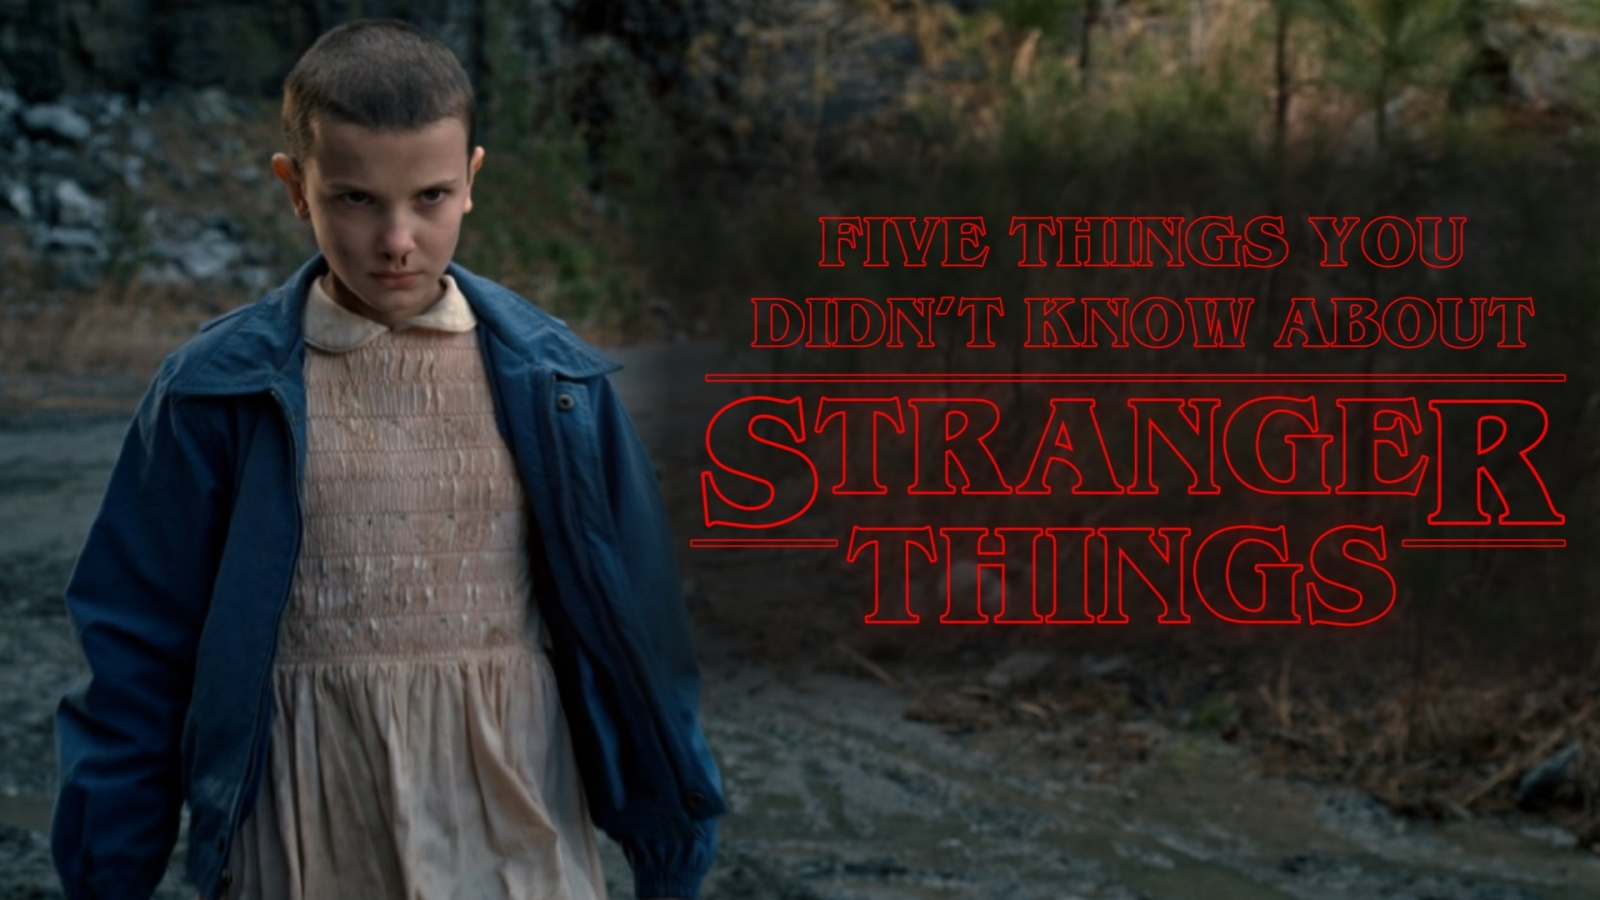 Five things you didn't know about Stranger Things